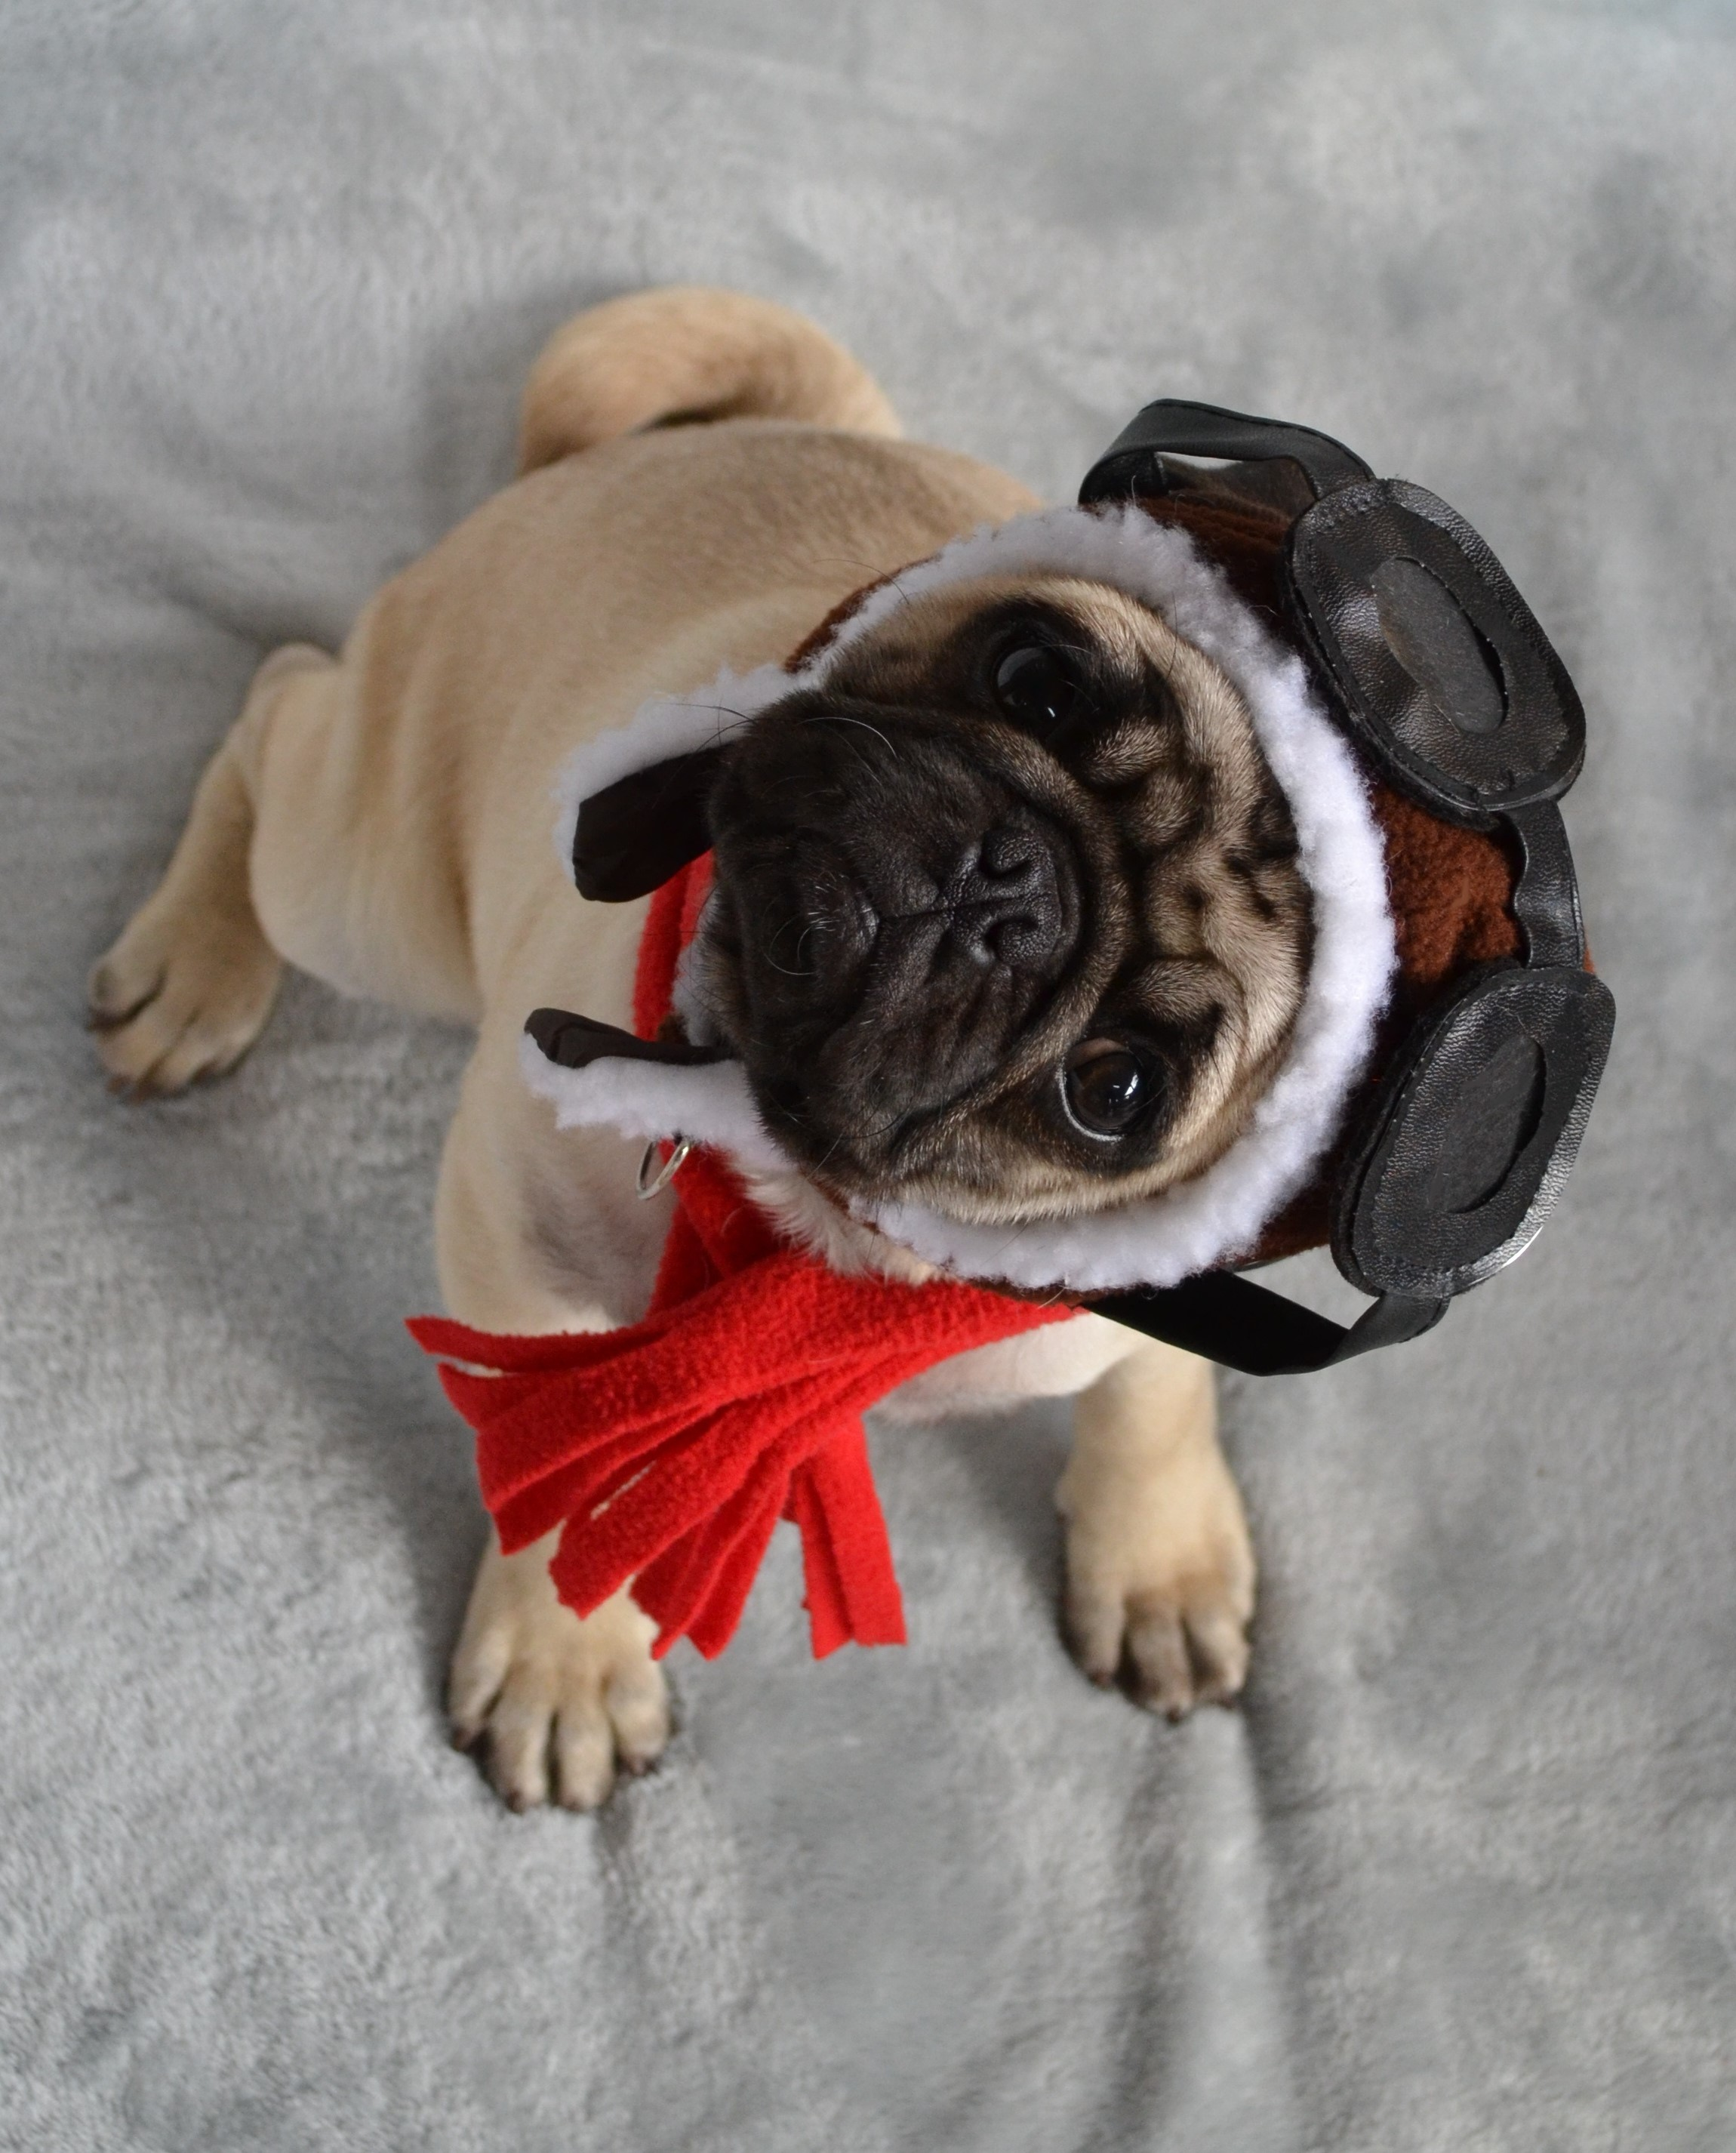 Pug Love Photos Of Pugs images Boo The Aviator Pilot Pug Halloween Costume HD wallpaper and background photos & Pug Love Photos Of Pugs images Boo The Aviator Pilot Pug Halloween ...